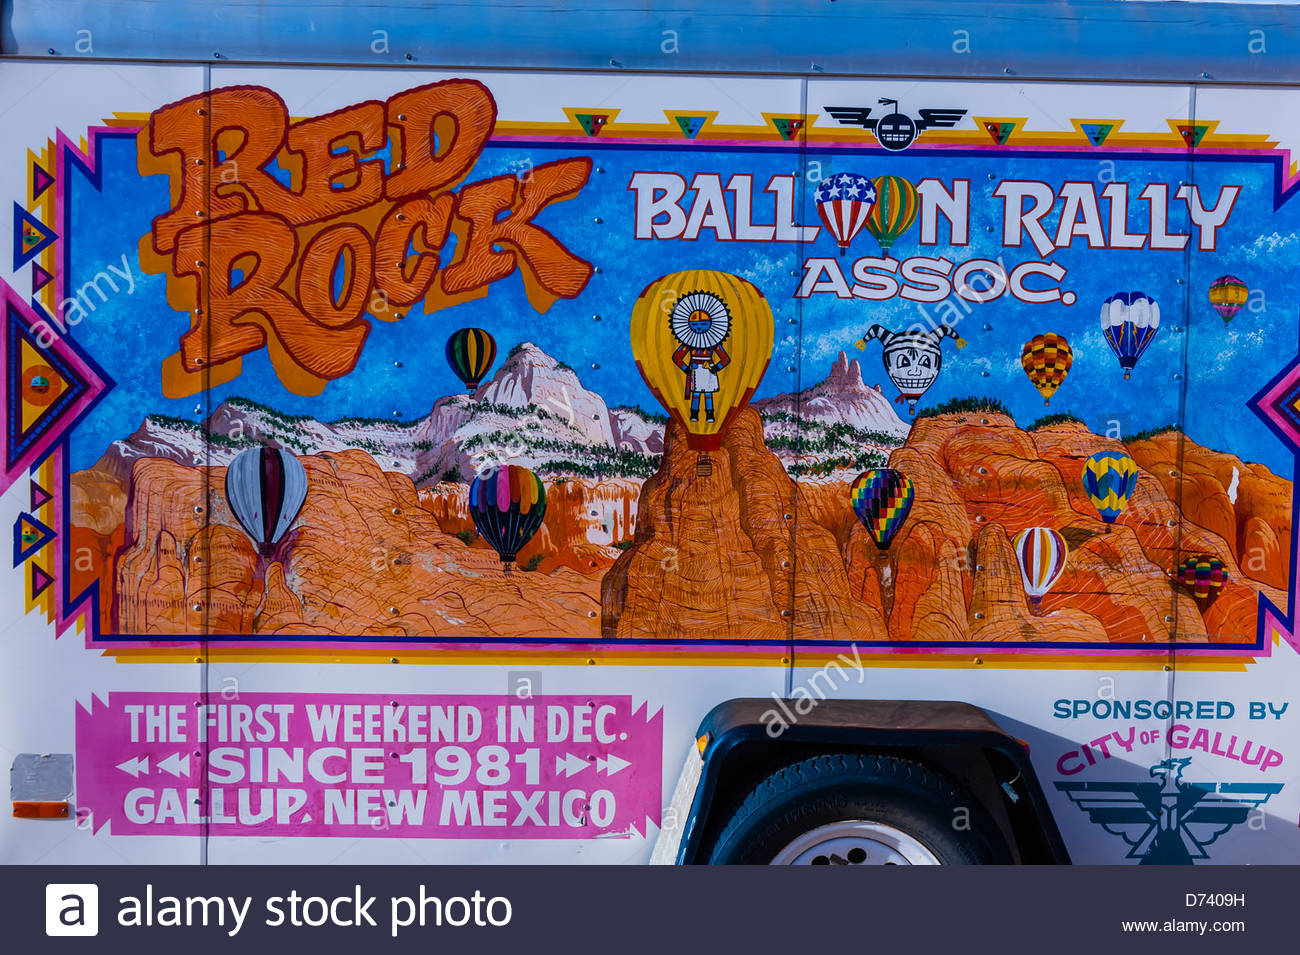 A hot air balloon trailer at the Red Rock Balloon Rally, Rock State Park, Gallup, New Mexico USA. Stock Photo